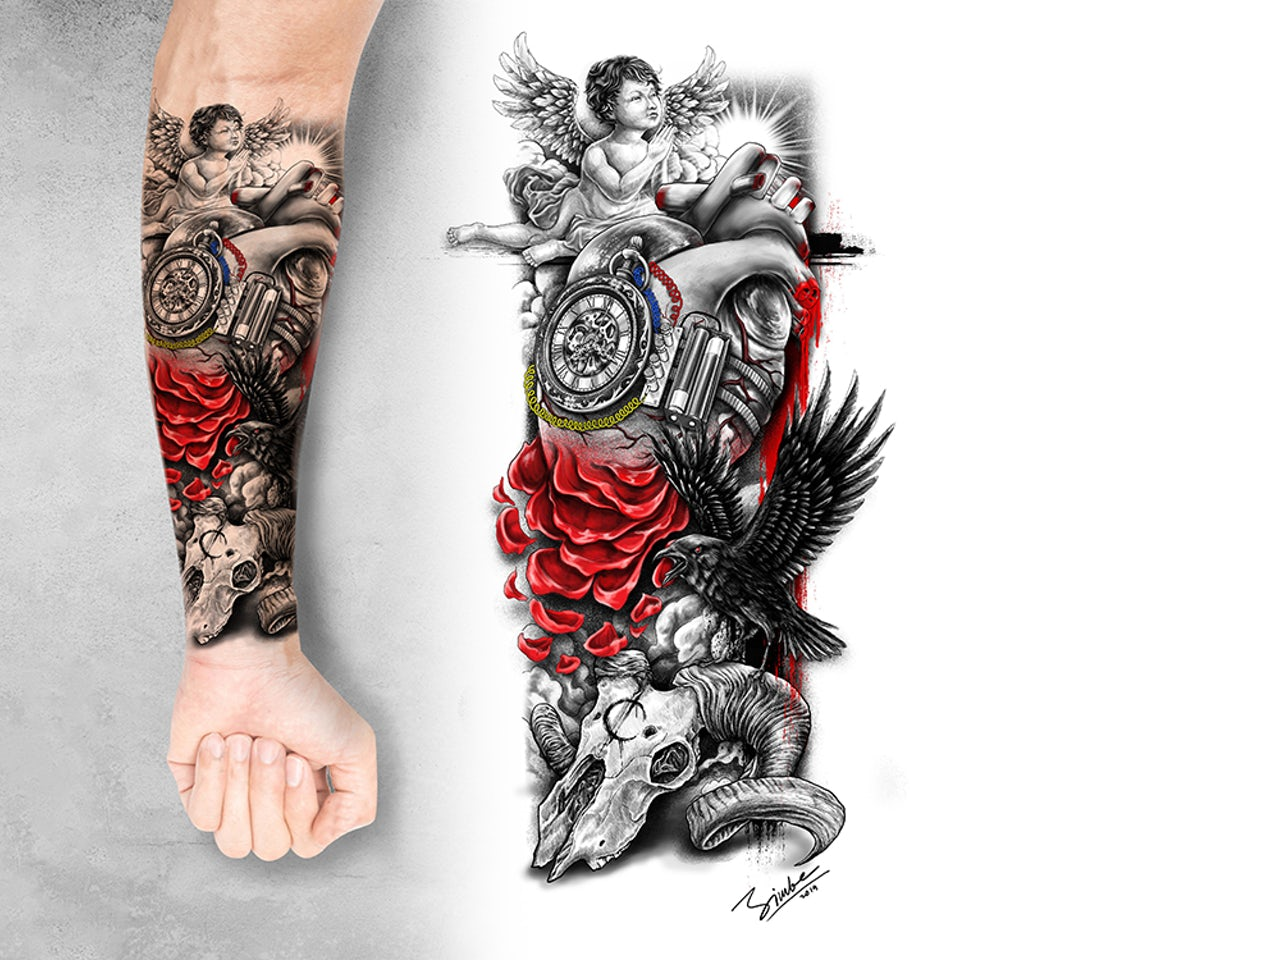 12 Classic Tattoo Styles You Need To Know 99designs